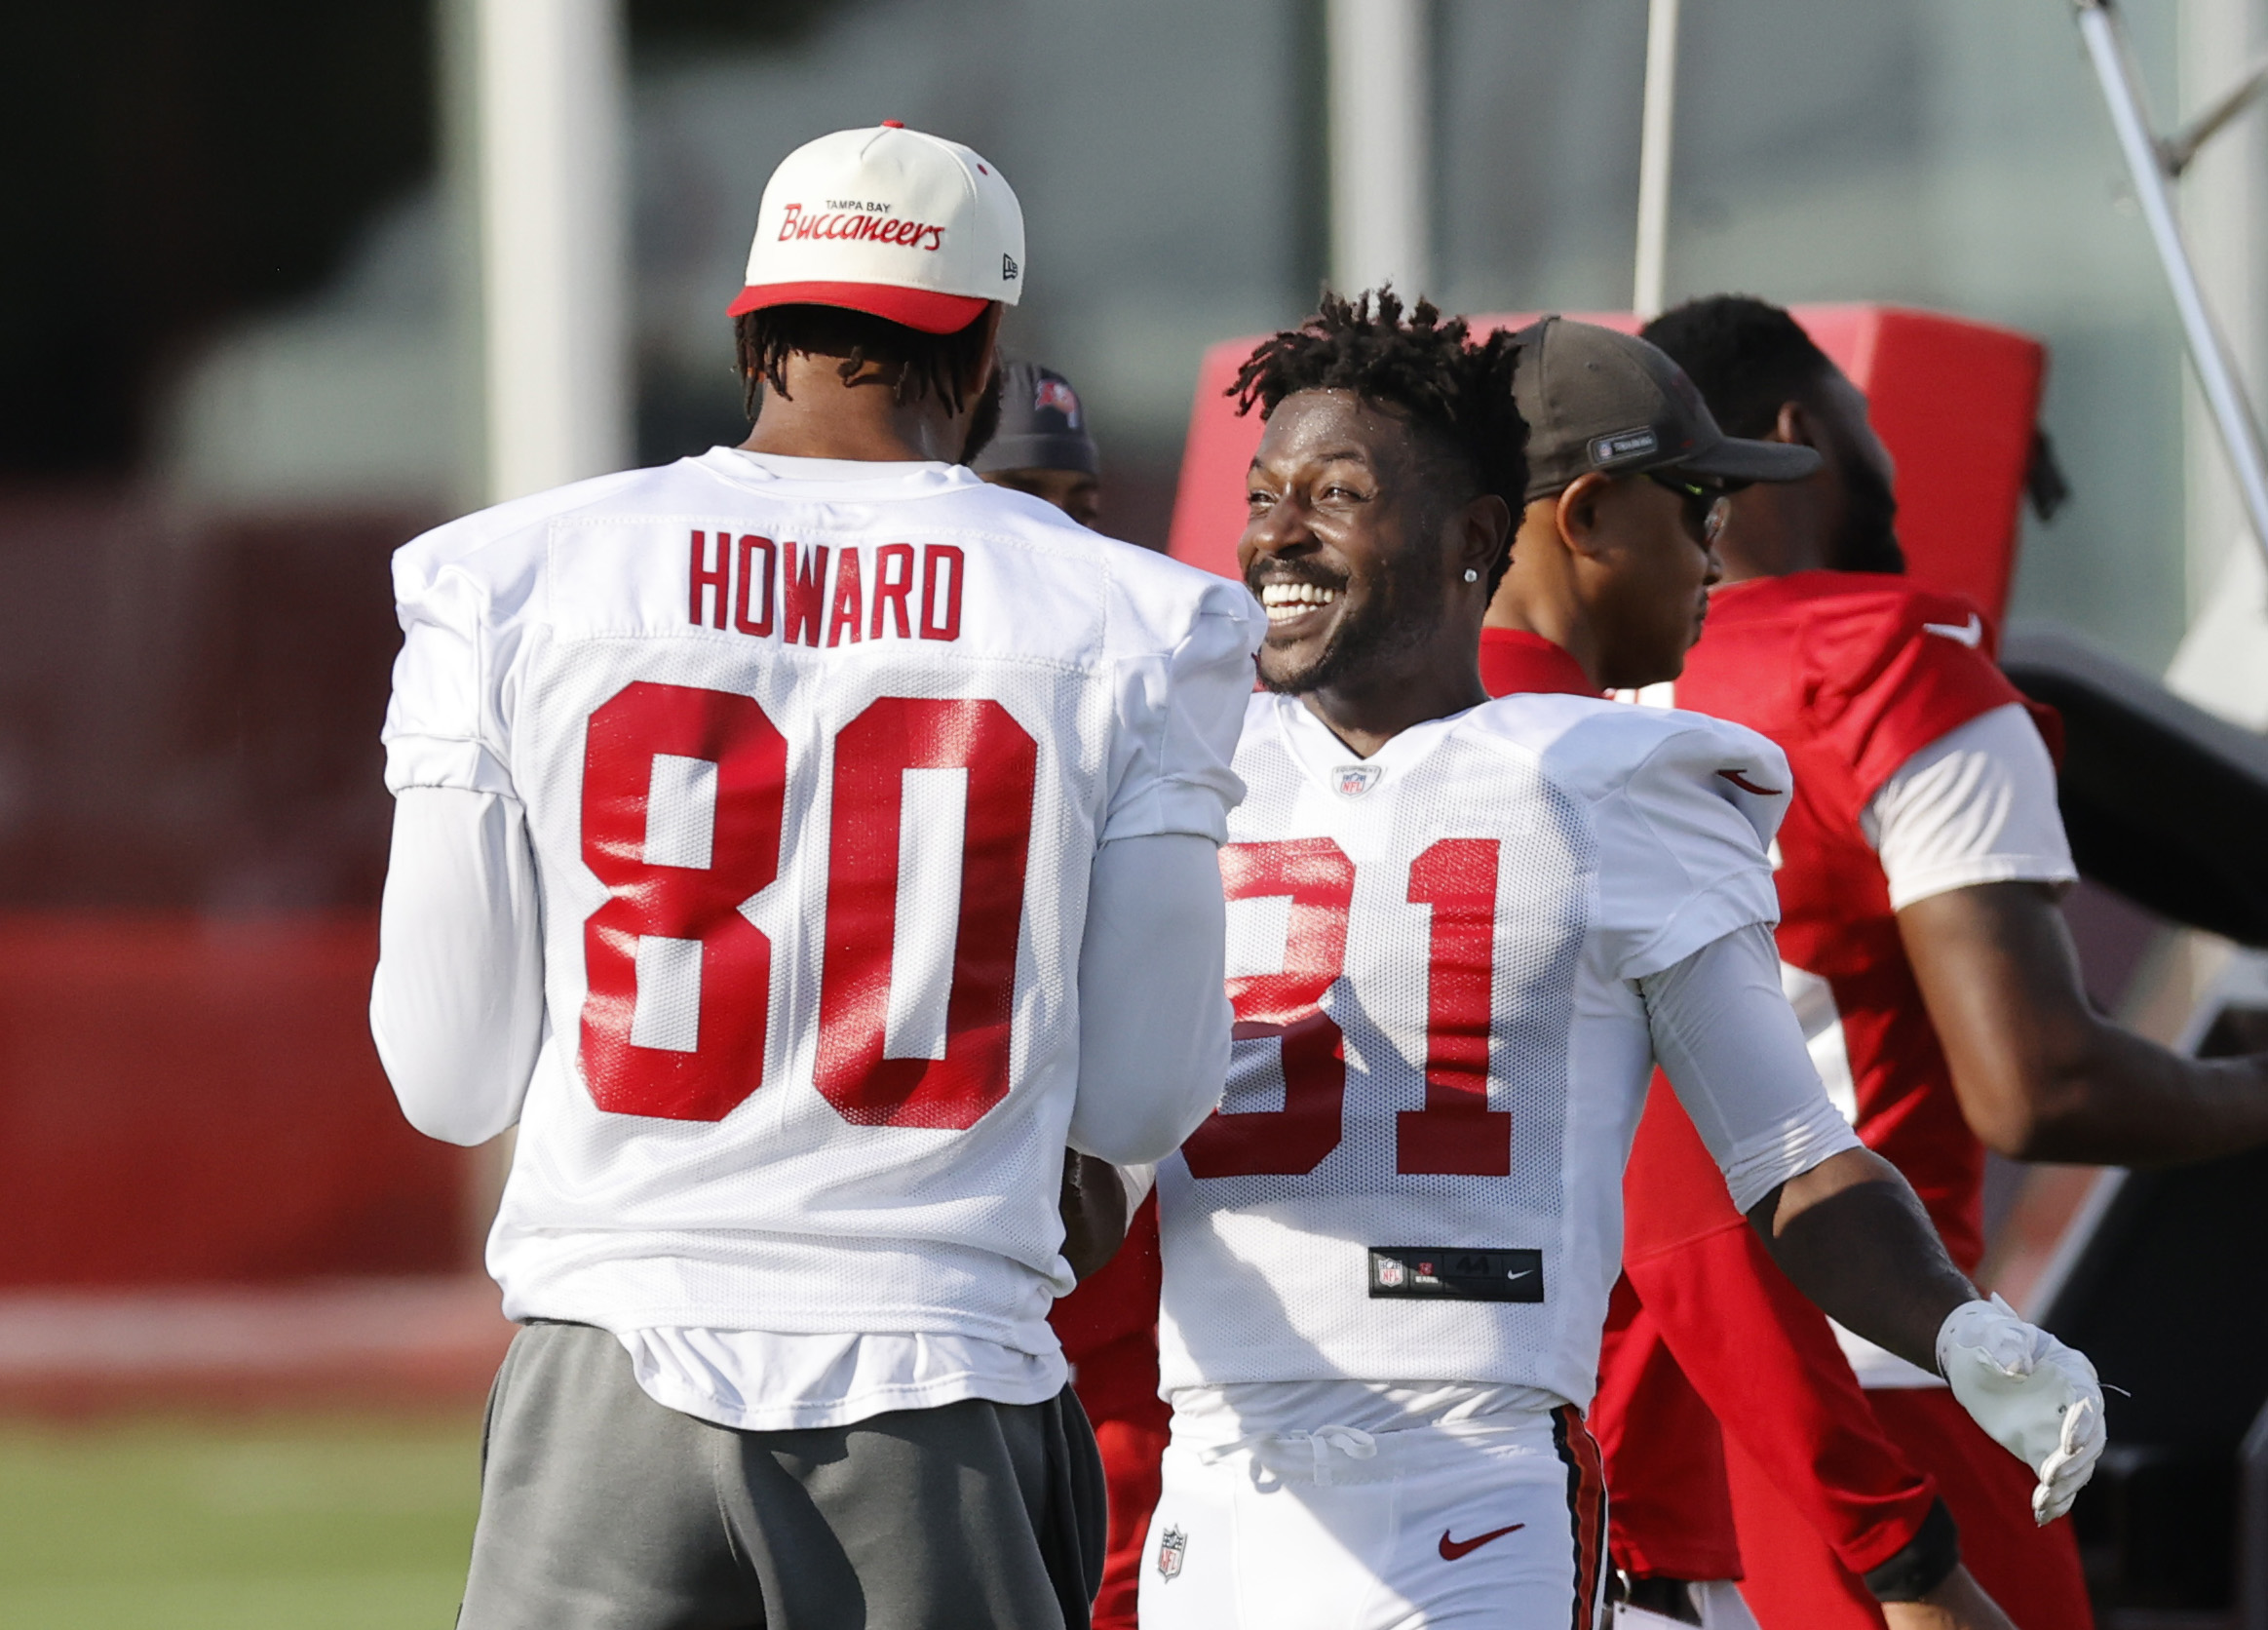 Could issues with dropped passes hinder OJ Howard's playing time this season?